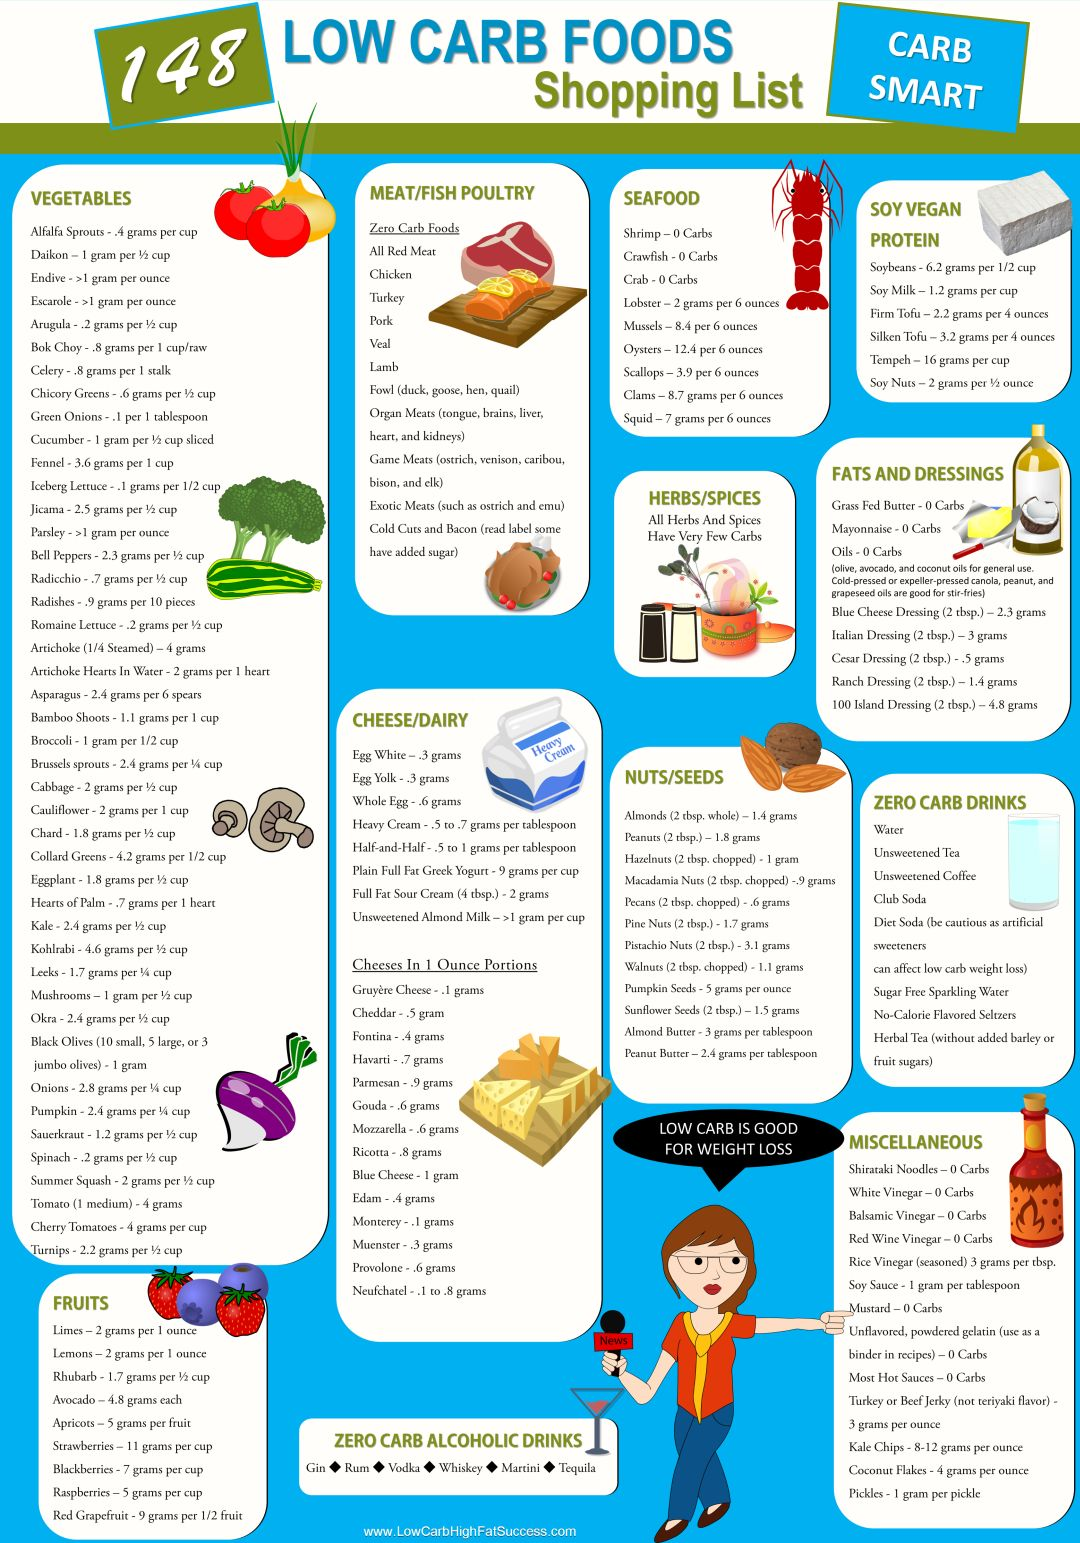 Low Fat And High Carbohydrate Foods